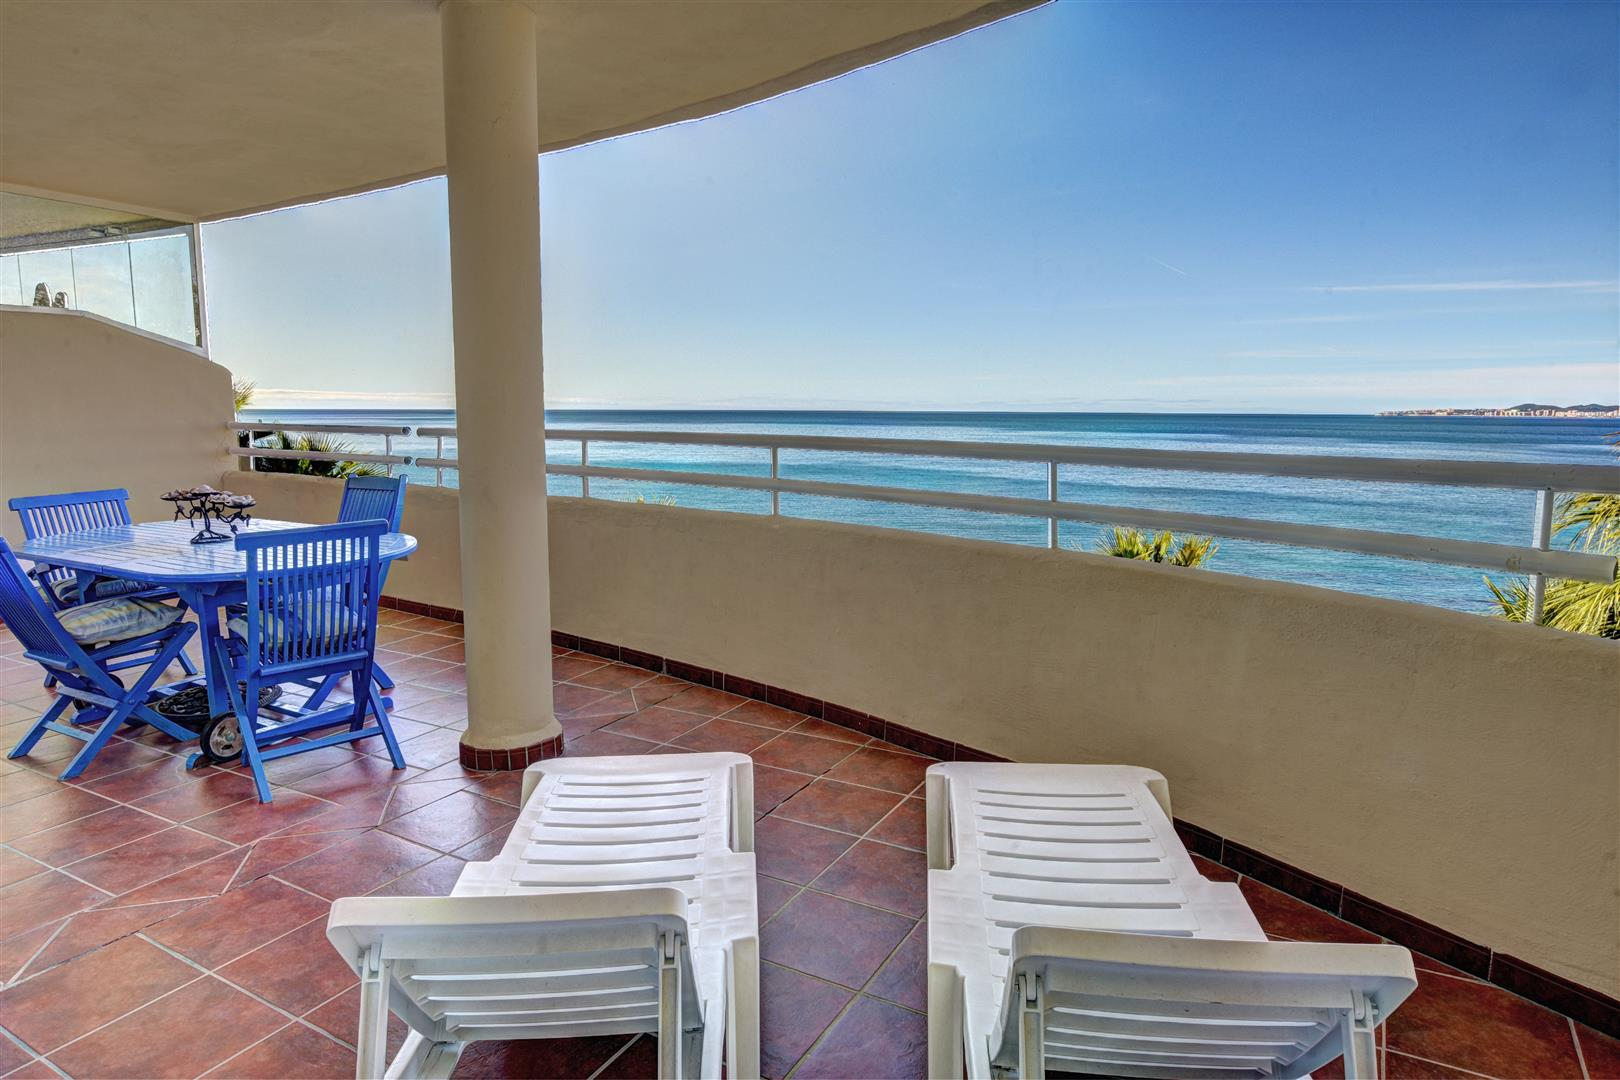 2 bed apartment for sale in Benalmadena Costa Costaquebrada terrace